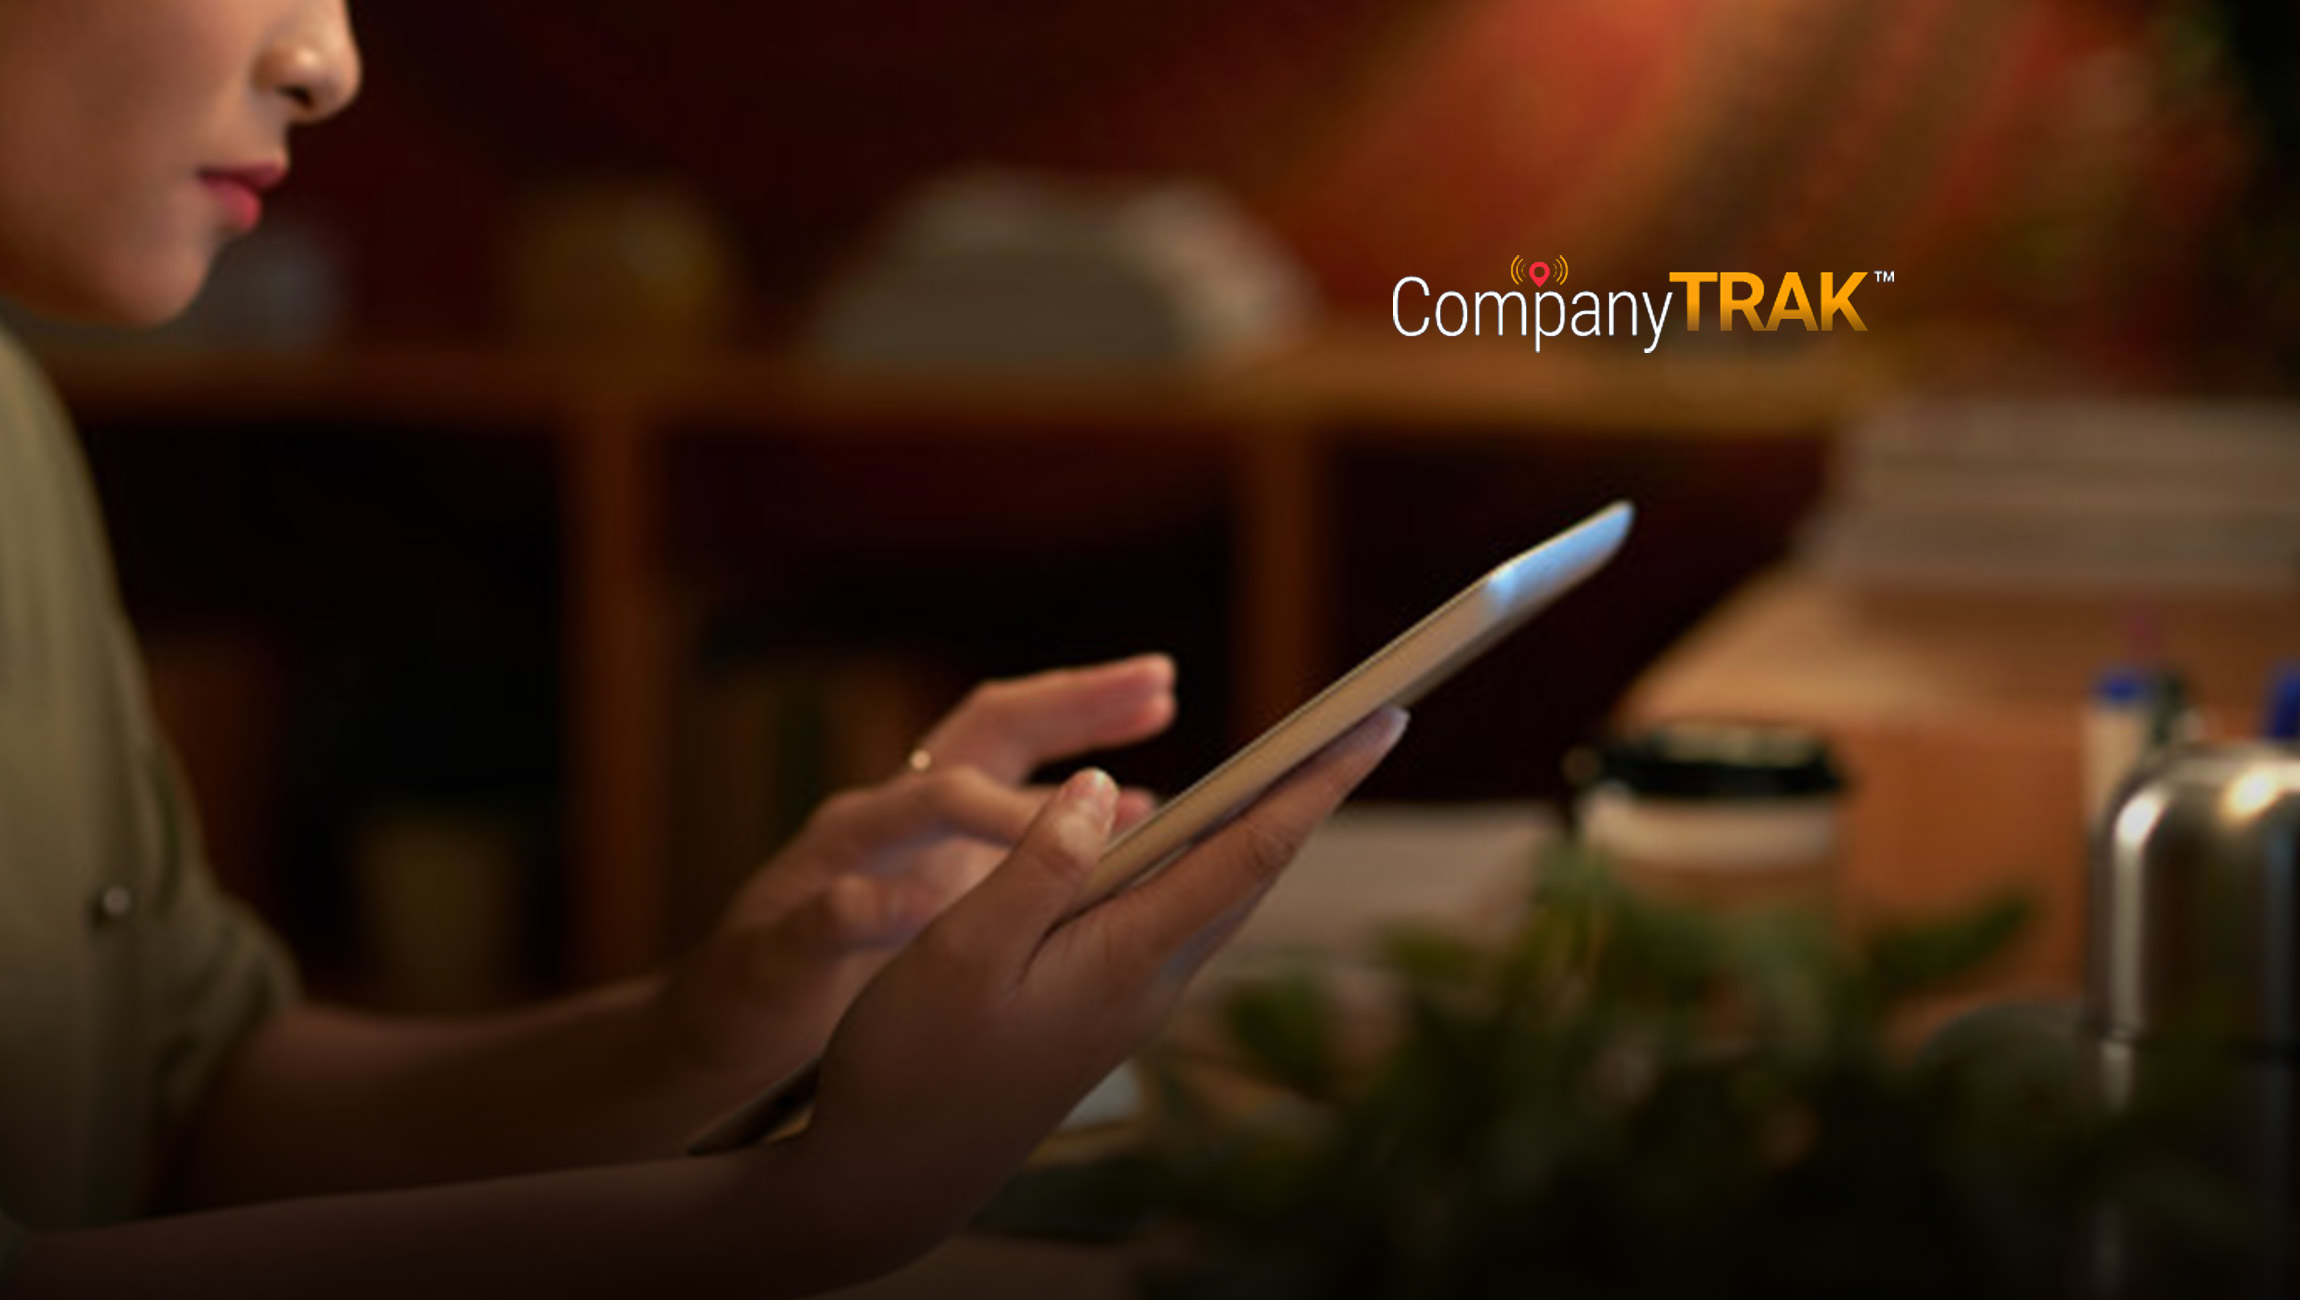 Michigan Company Launches CompanyTRAK Enterprise Solution, a Contact Tracing, Social Distancing Solution, Helping Companies Bring Employees Back to a Safe Workplace